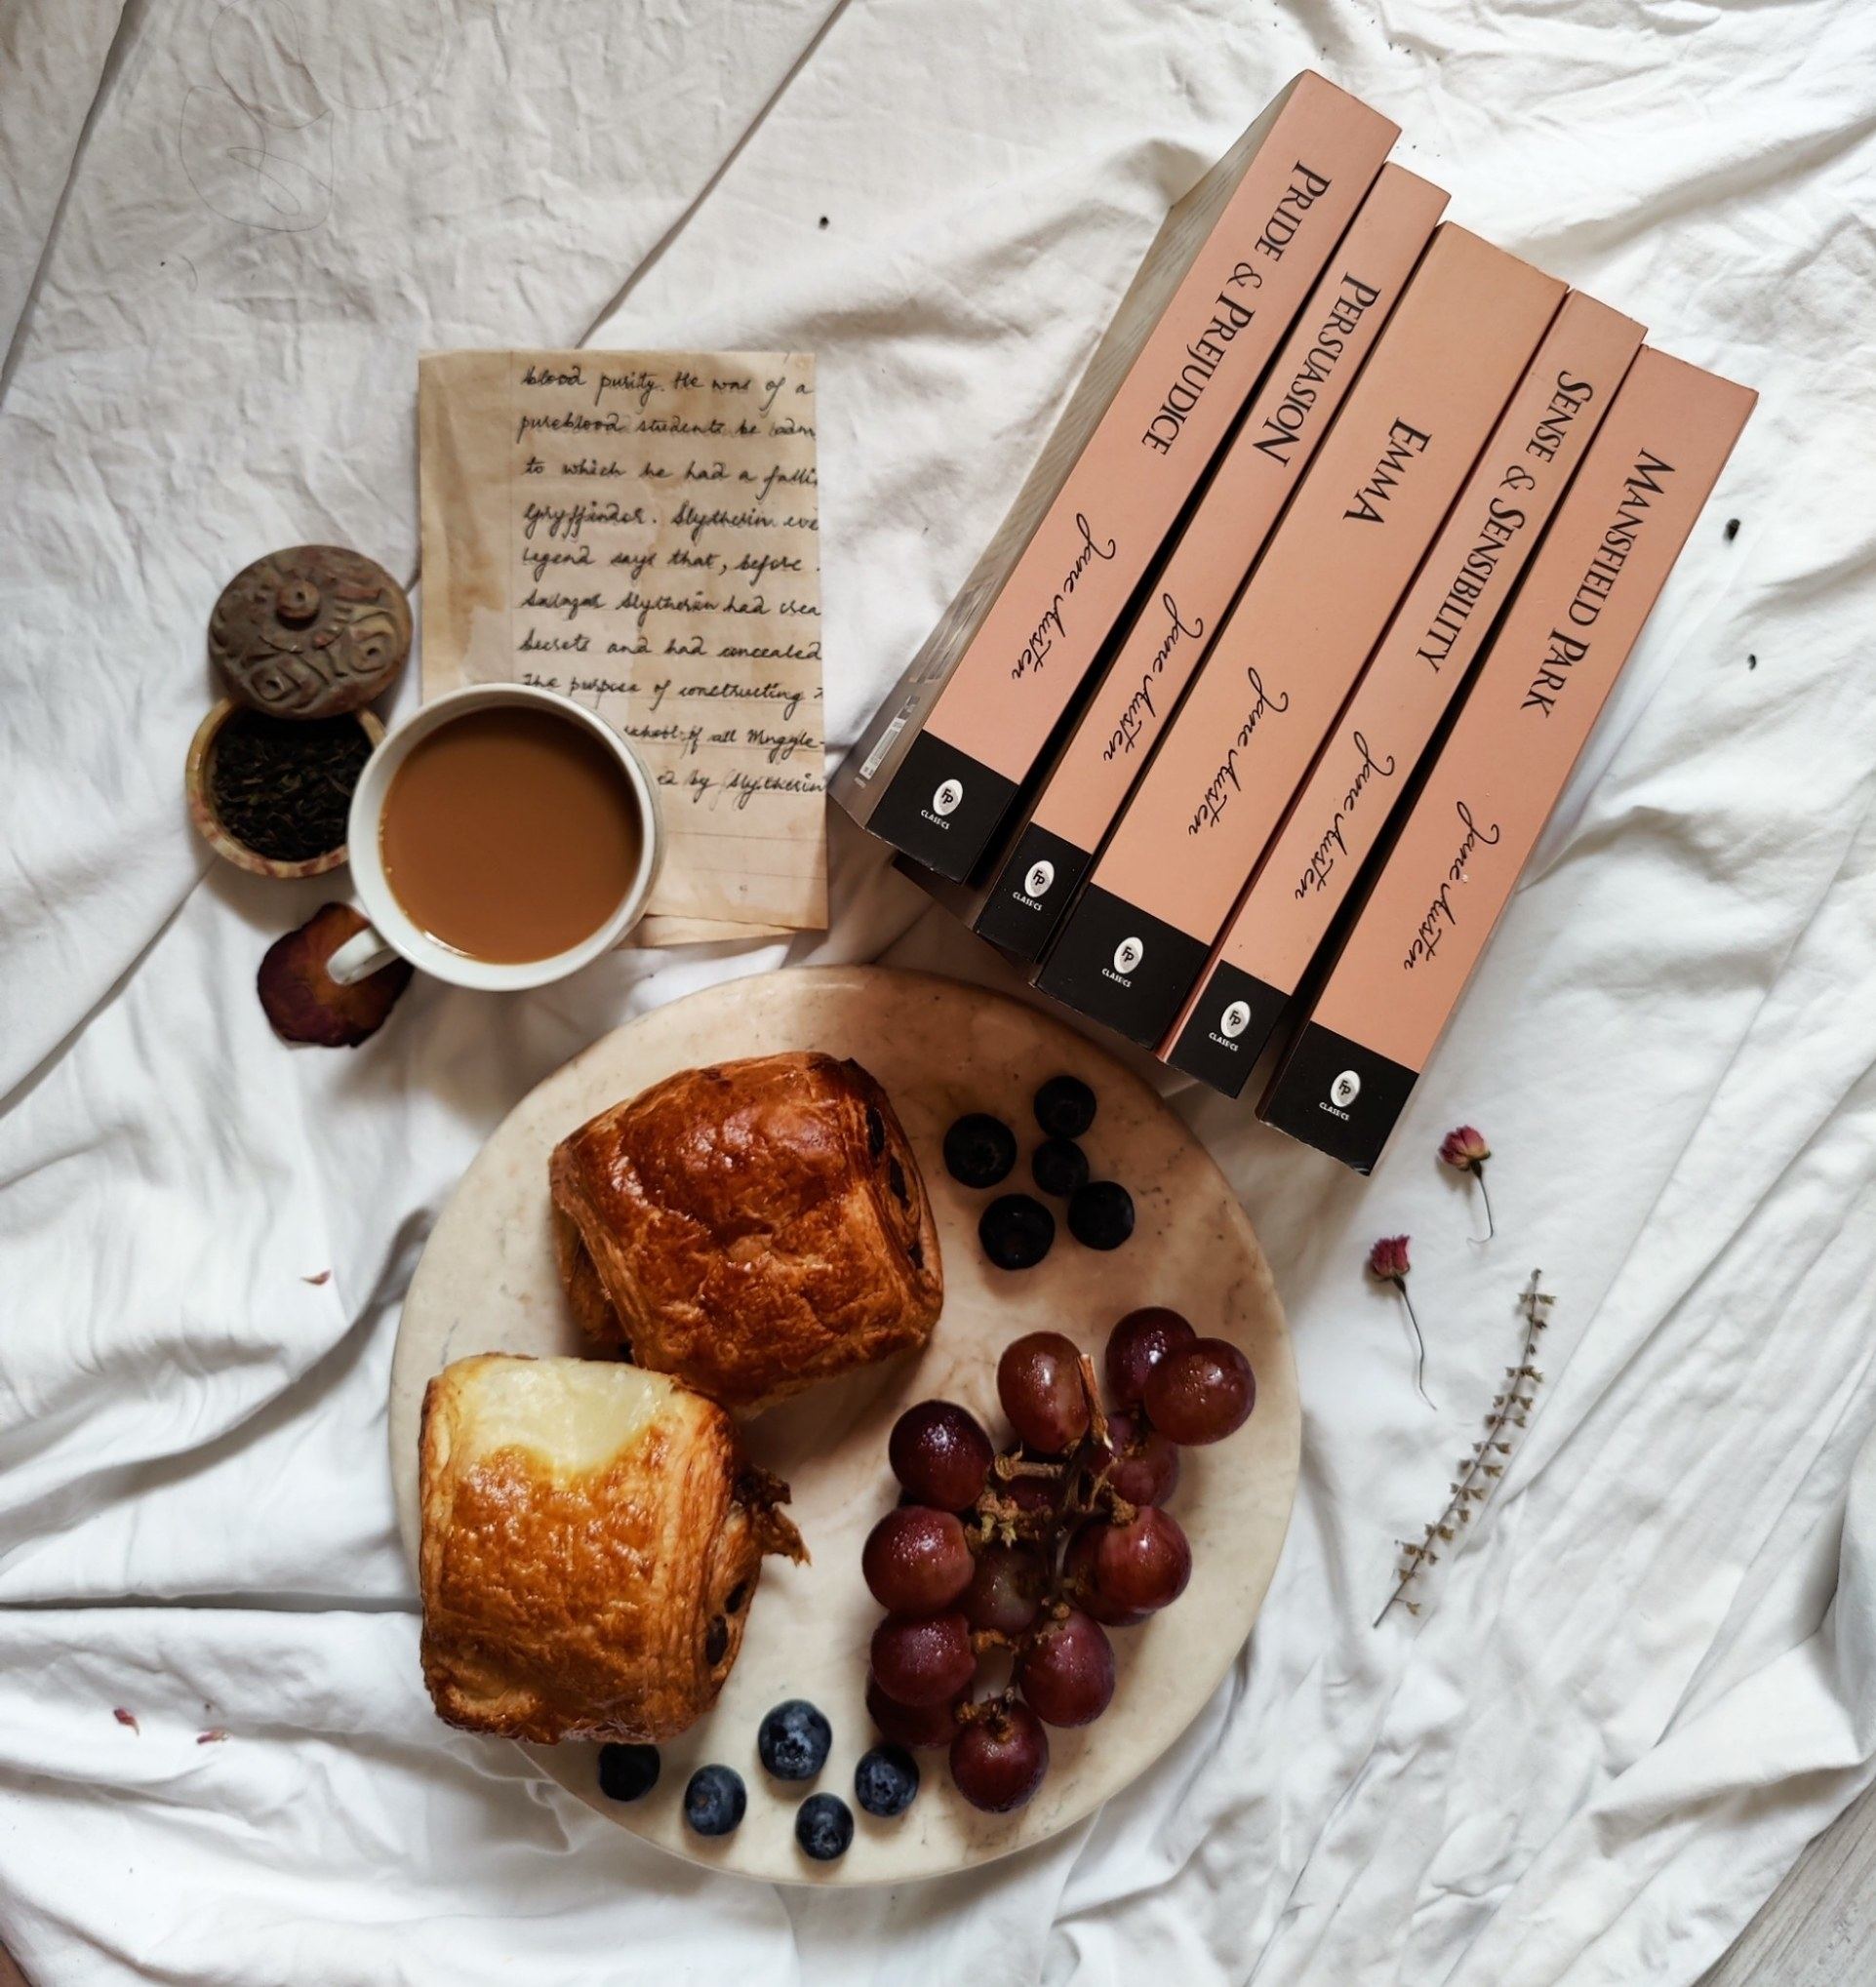 The book set pictured with a parchment, cup of coffee, bread rolls, grapes, and blueberries.